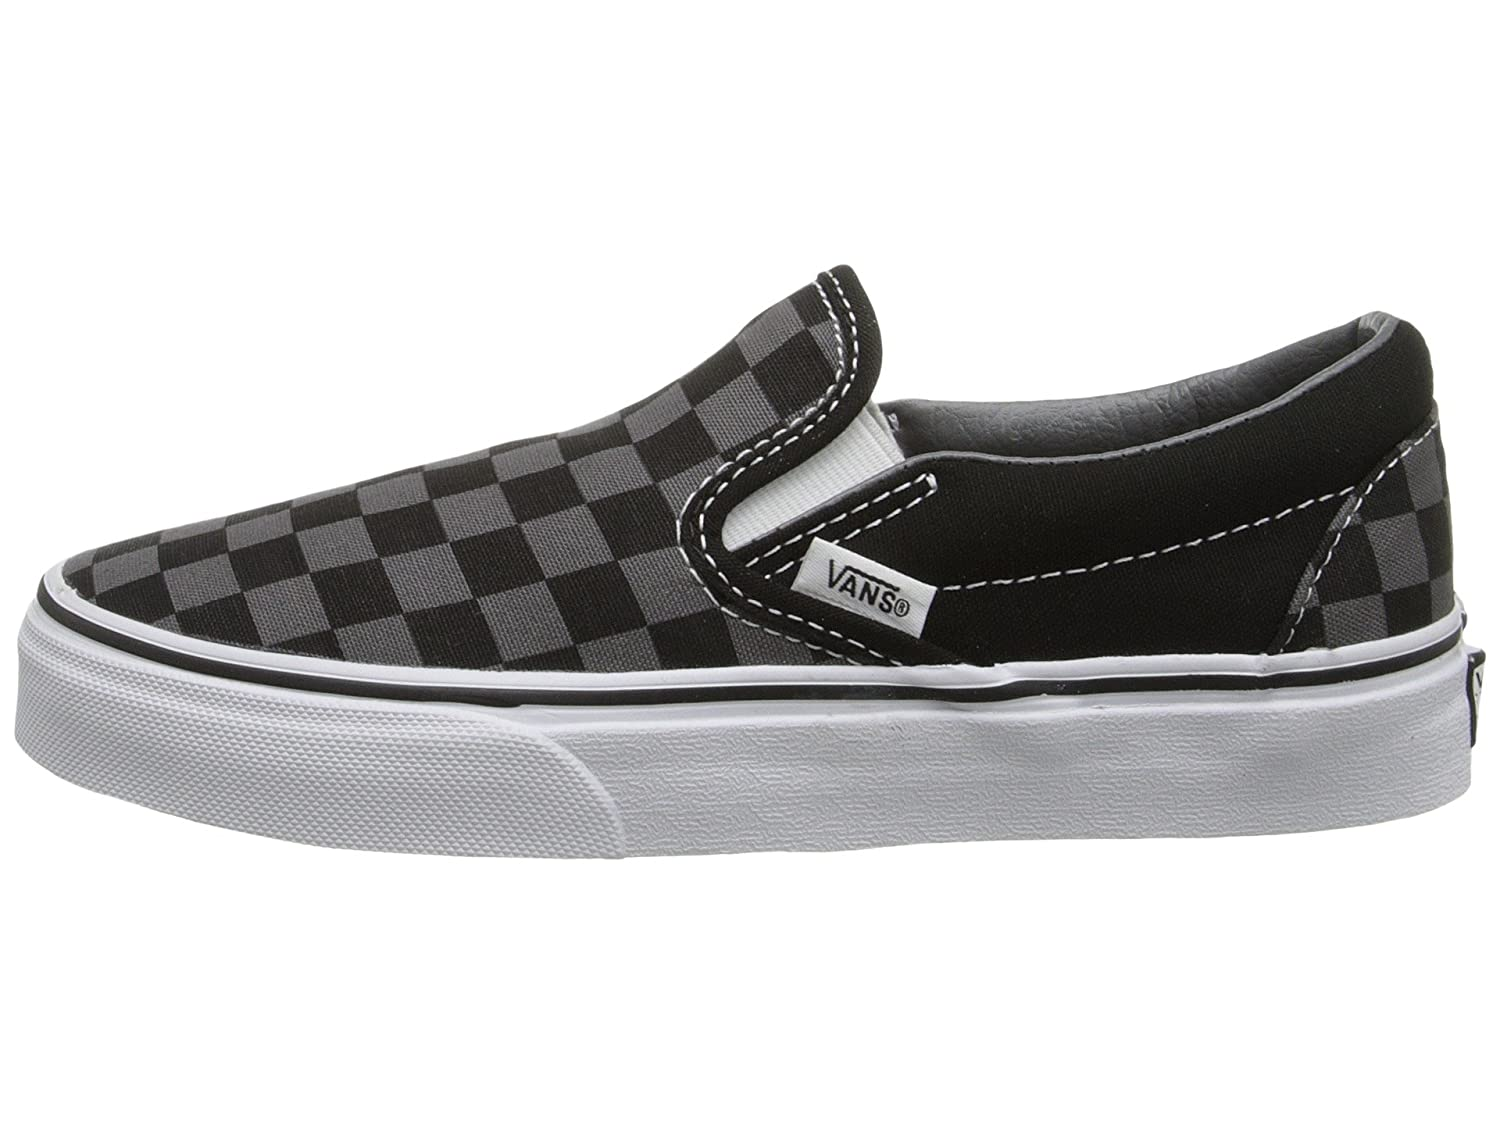 Vans Men's Classic Slip On (Suede & Suiting) Skateboarding Shoes B01M8F2RH7 6 B(M) US Women / 4.5 D(M) US Men|Black/Pewter Checkerboard